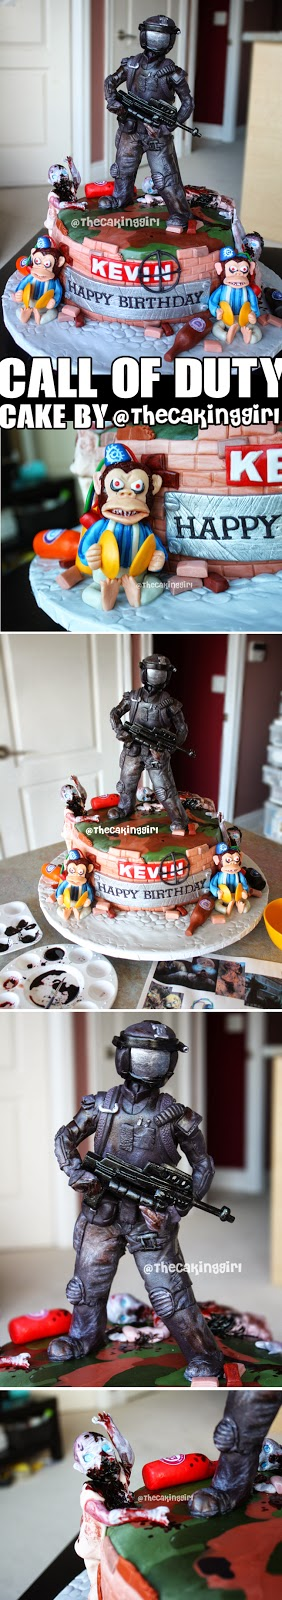 best call of duty cake